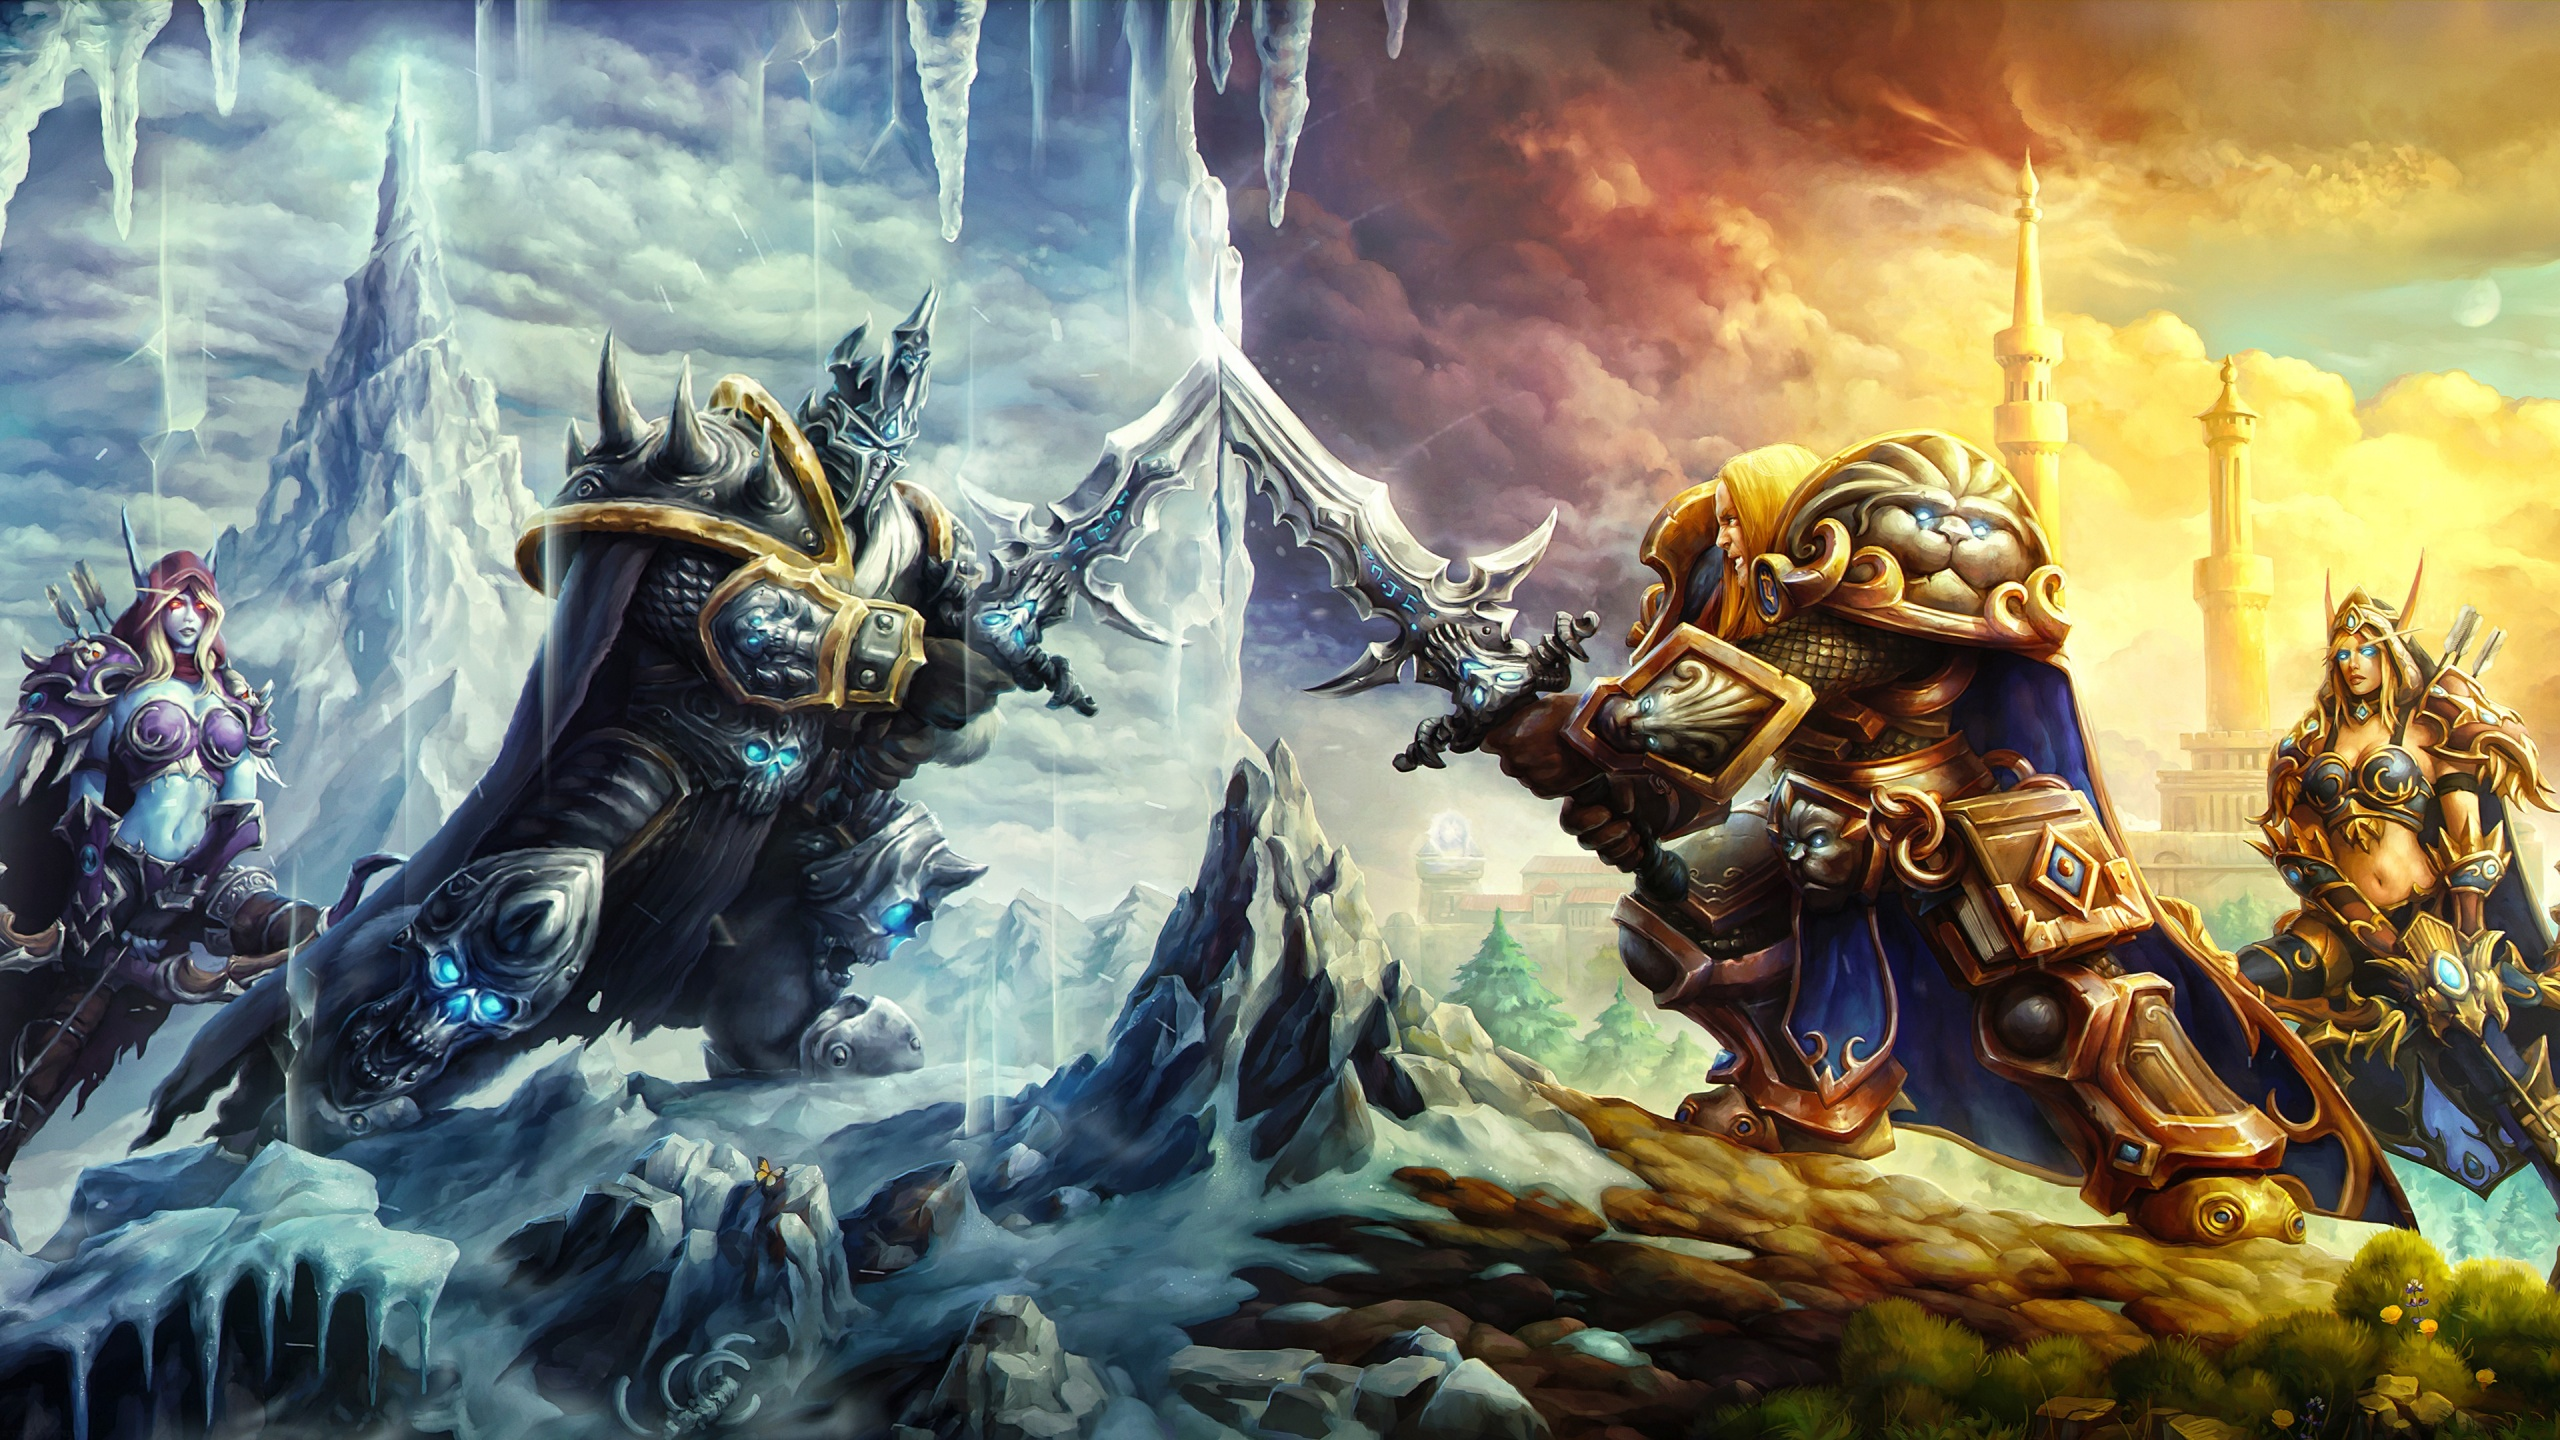 18 Hd Heroes Of The Storm Wallpapers